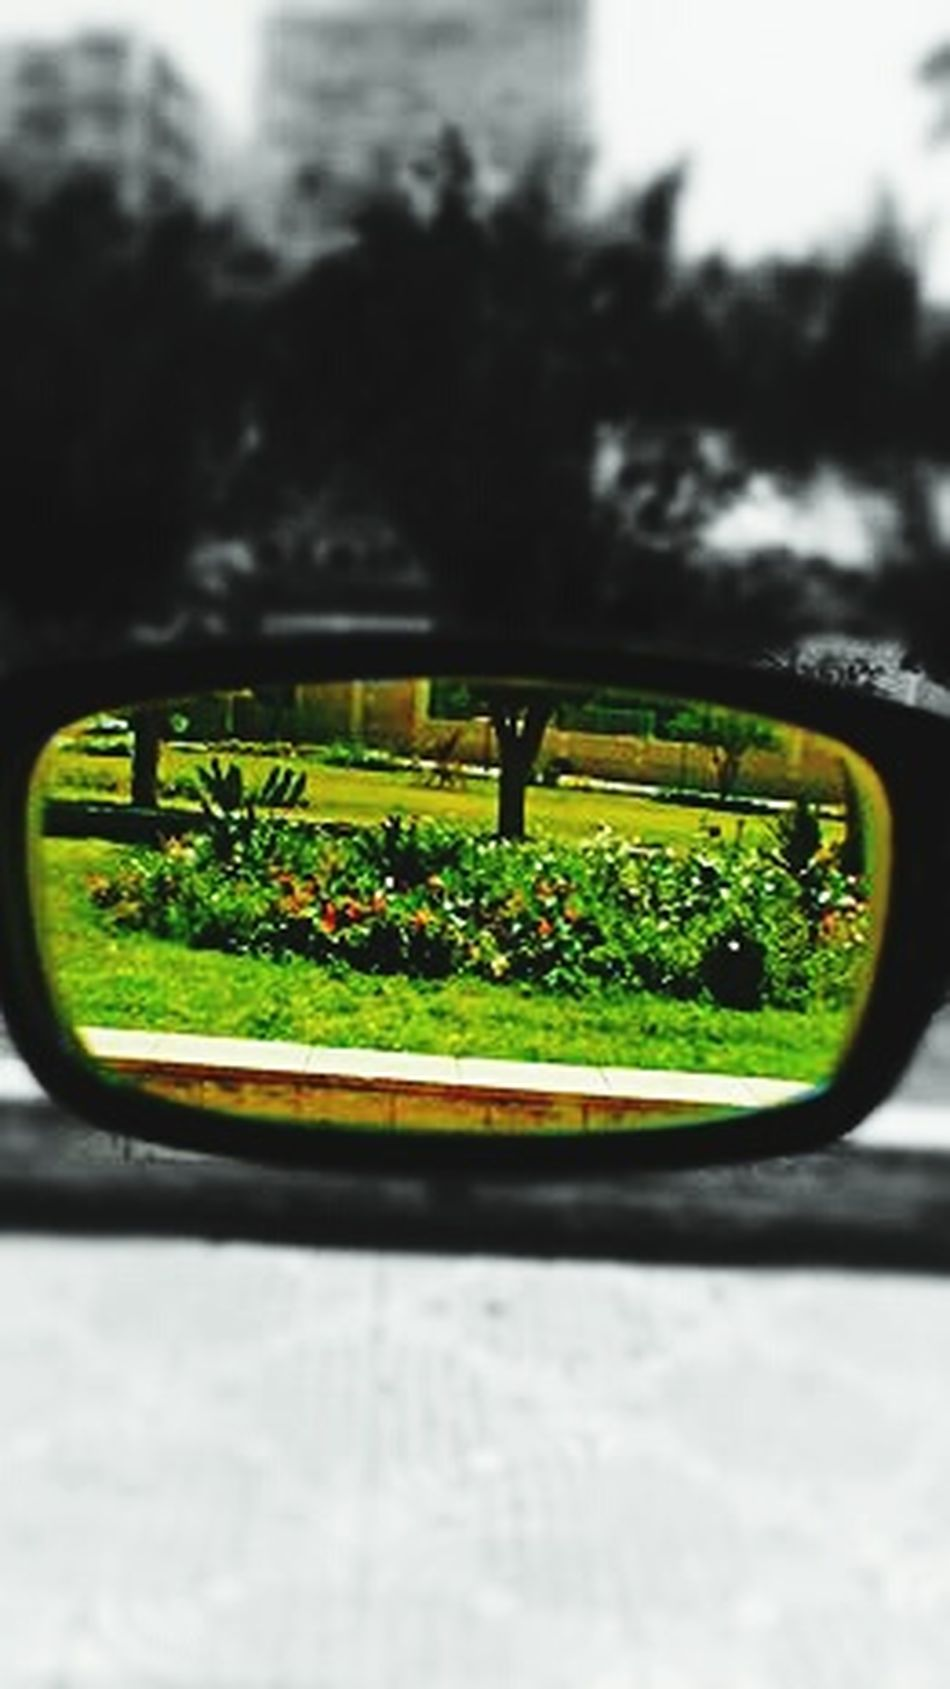 Glasses Glasses Or No Glasses? Glasses Reflect Transportation Car Reflection Land Vehicle Green Color Mode Of Transport Road Vehicle Mirror Tree No People Close-up Day Nature Side-view Mirror Freshness Outdoors